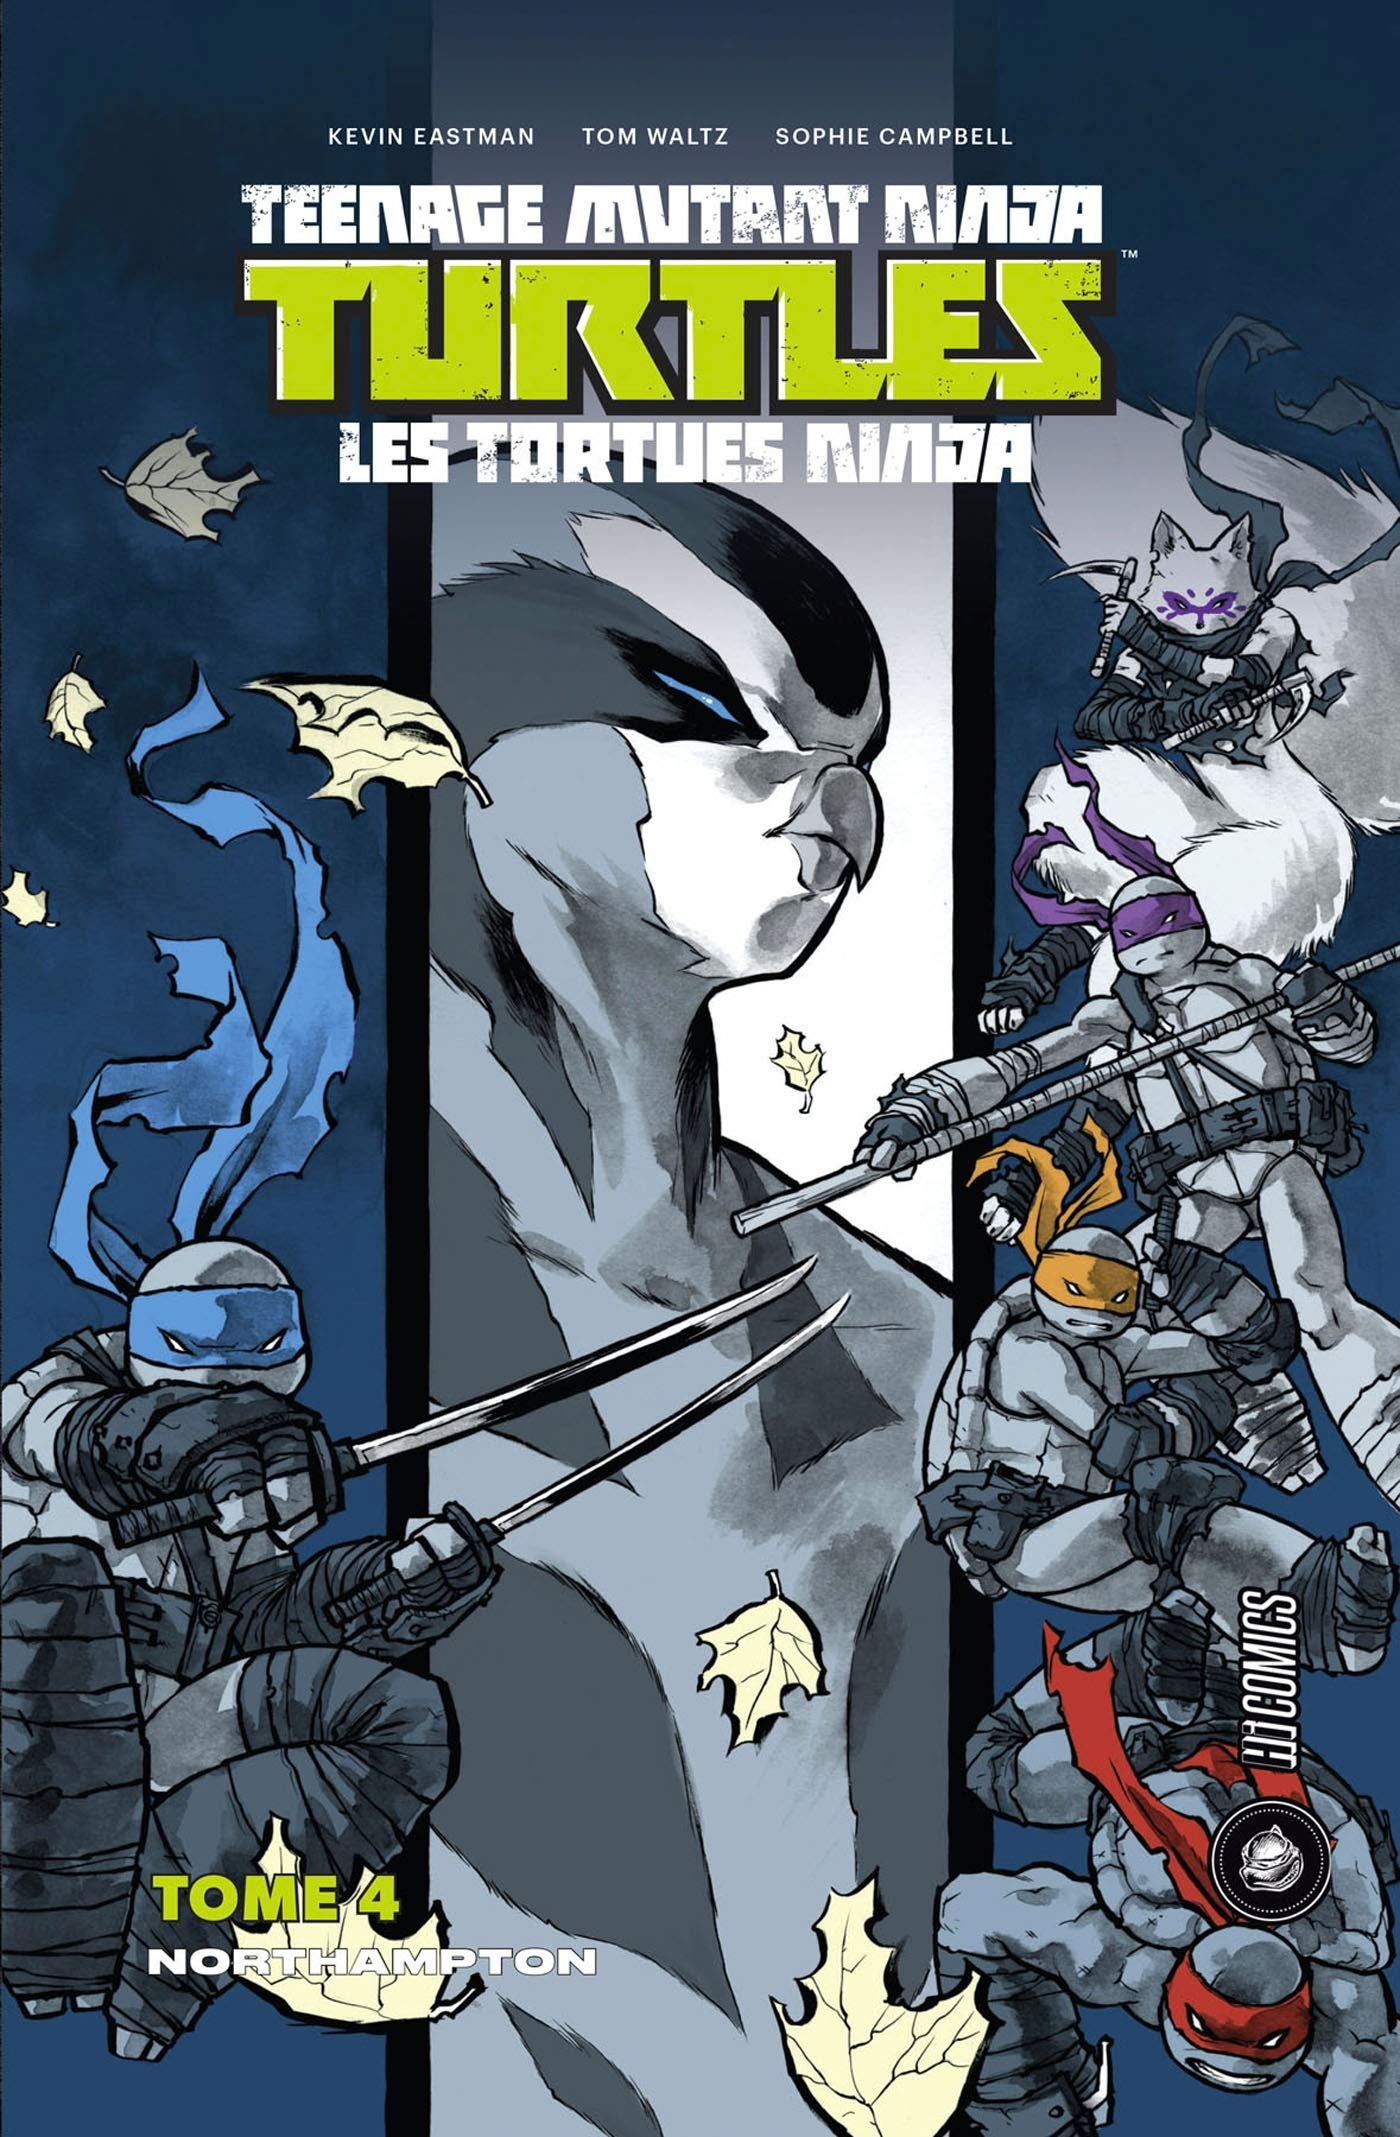 Teenage Mutant Ninja Turtles - Les tortues ninja, Tome 4 ...